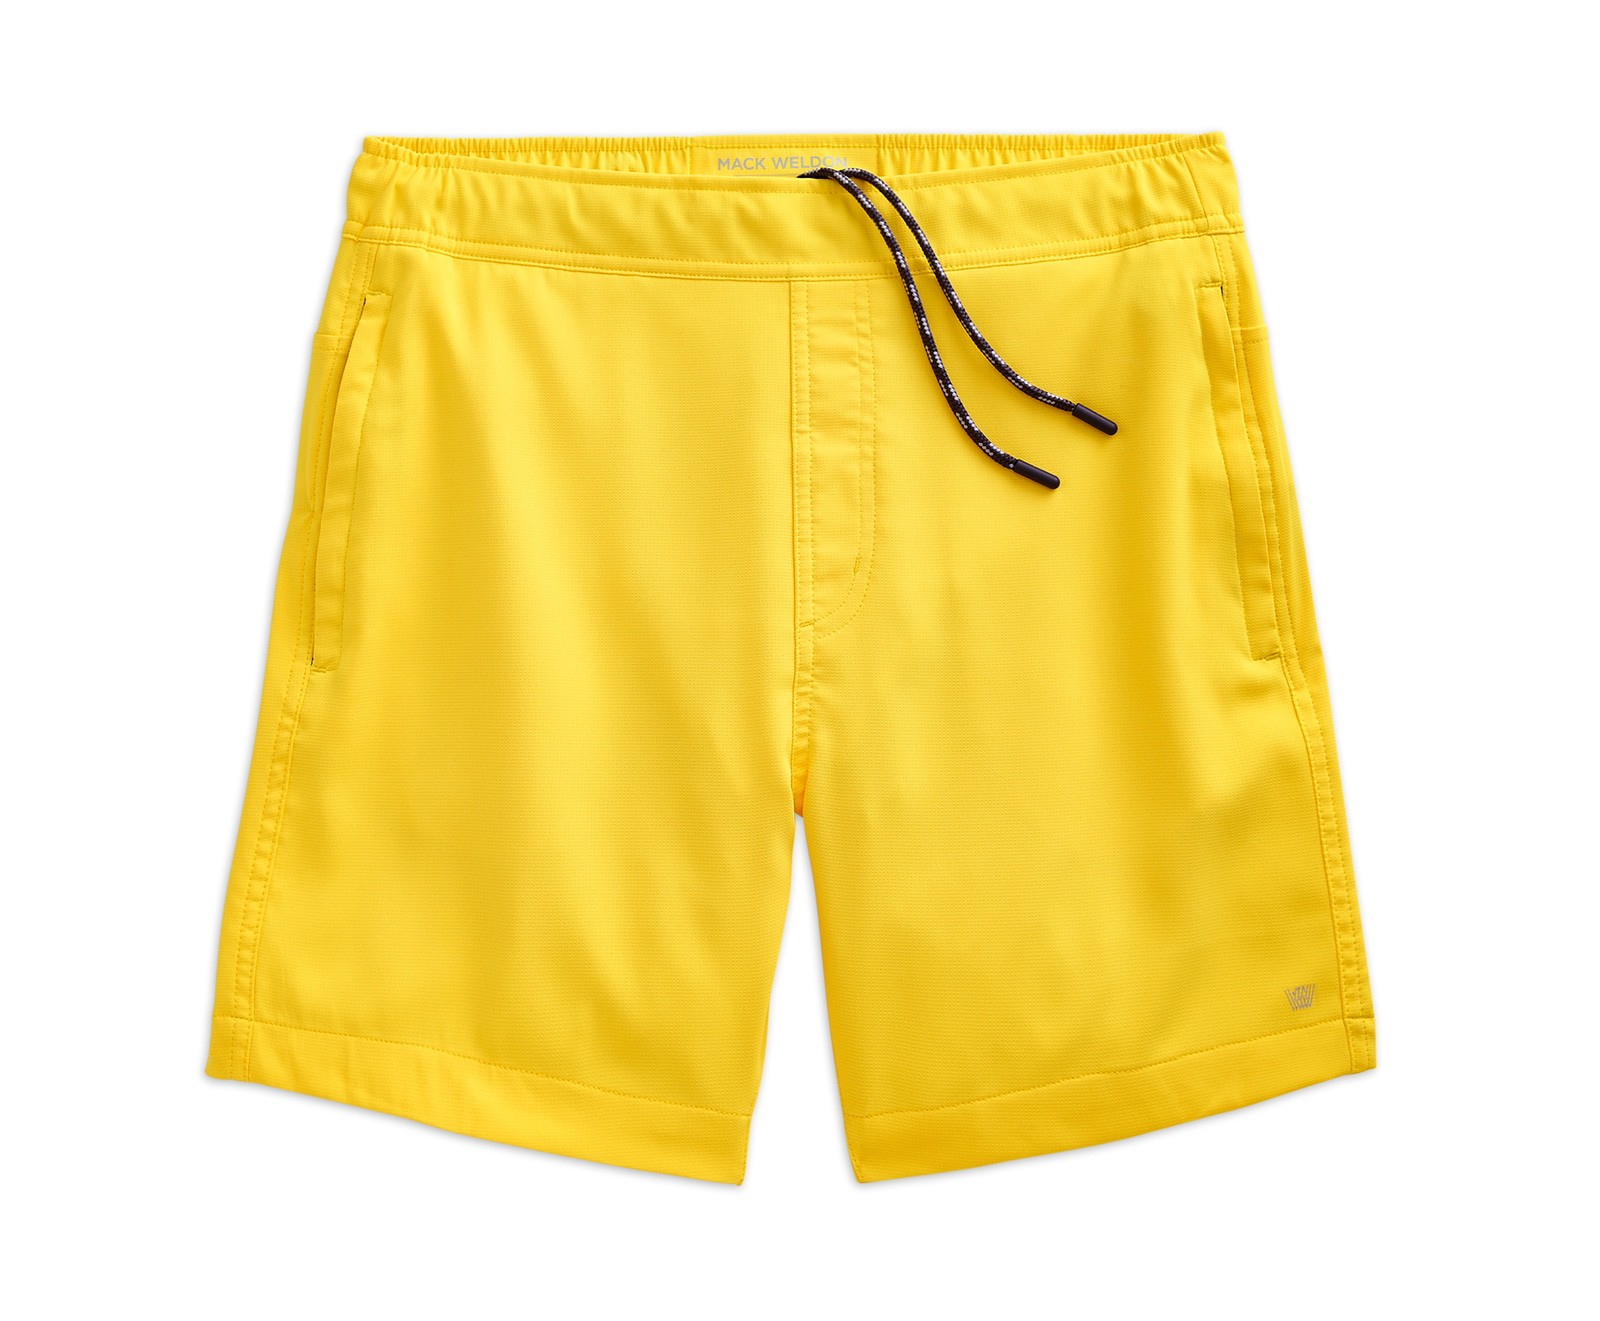 Mack Weldon - Trunk in Taxi / $88.00What better way to break free from the boring black trunks than with this perfectly yellow pair?